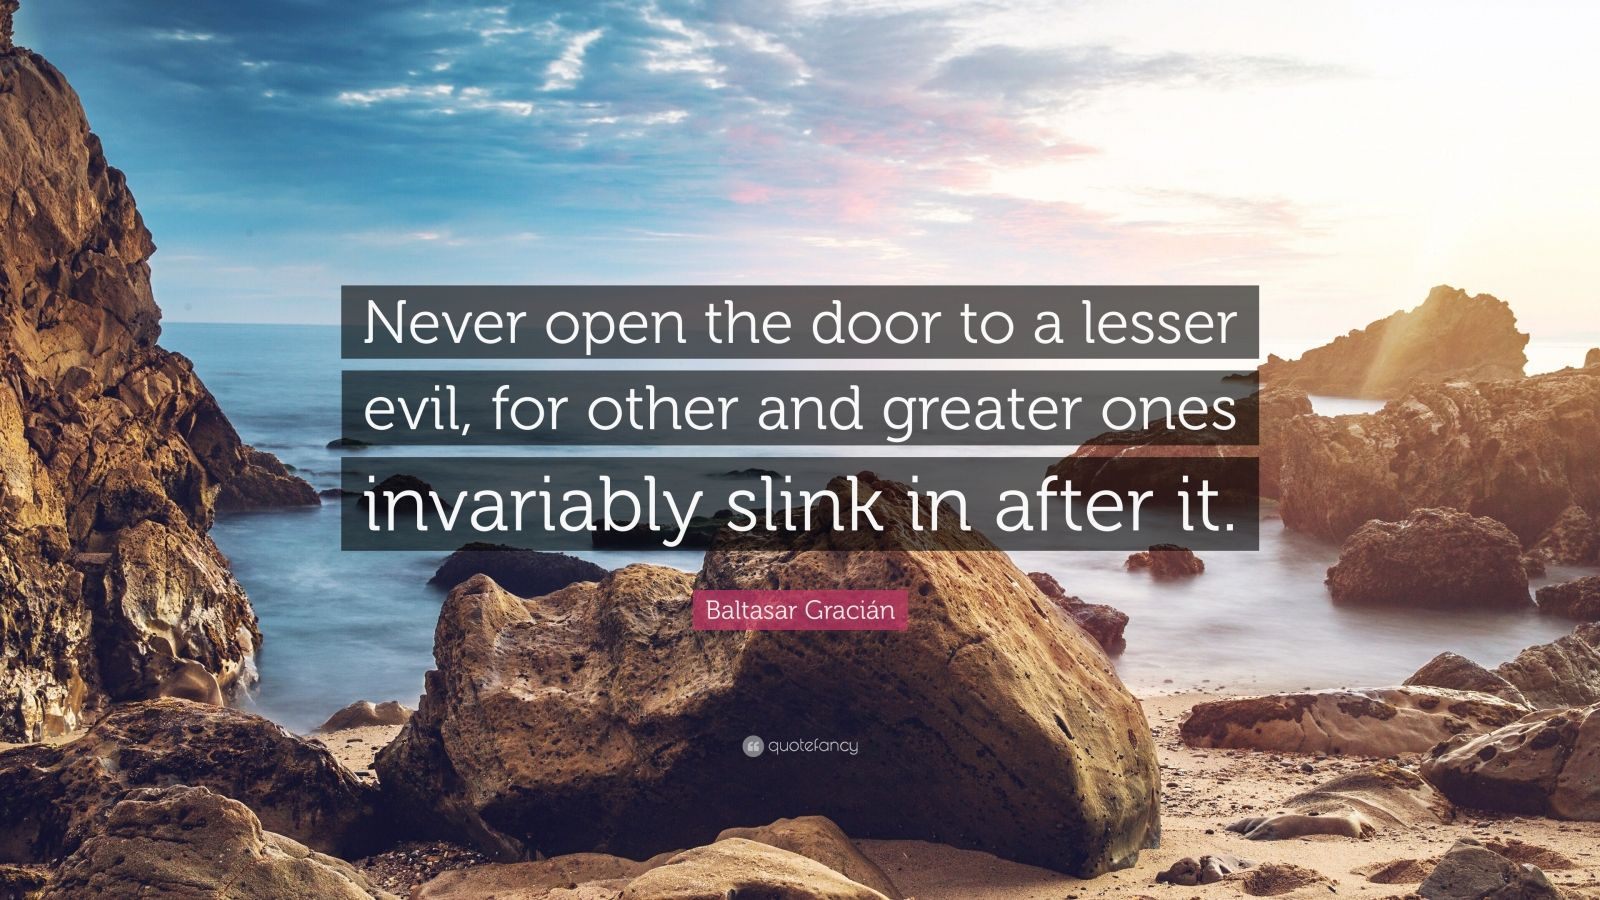 """Baltasar Gracián Quote: """"Never open the door to a lesser evil, for other and greater ones invariably slink in after it."""""""